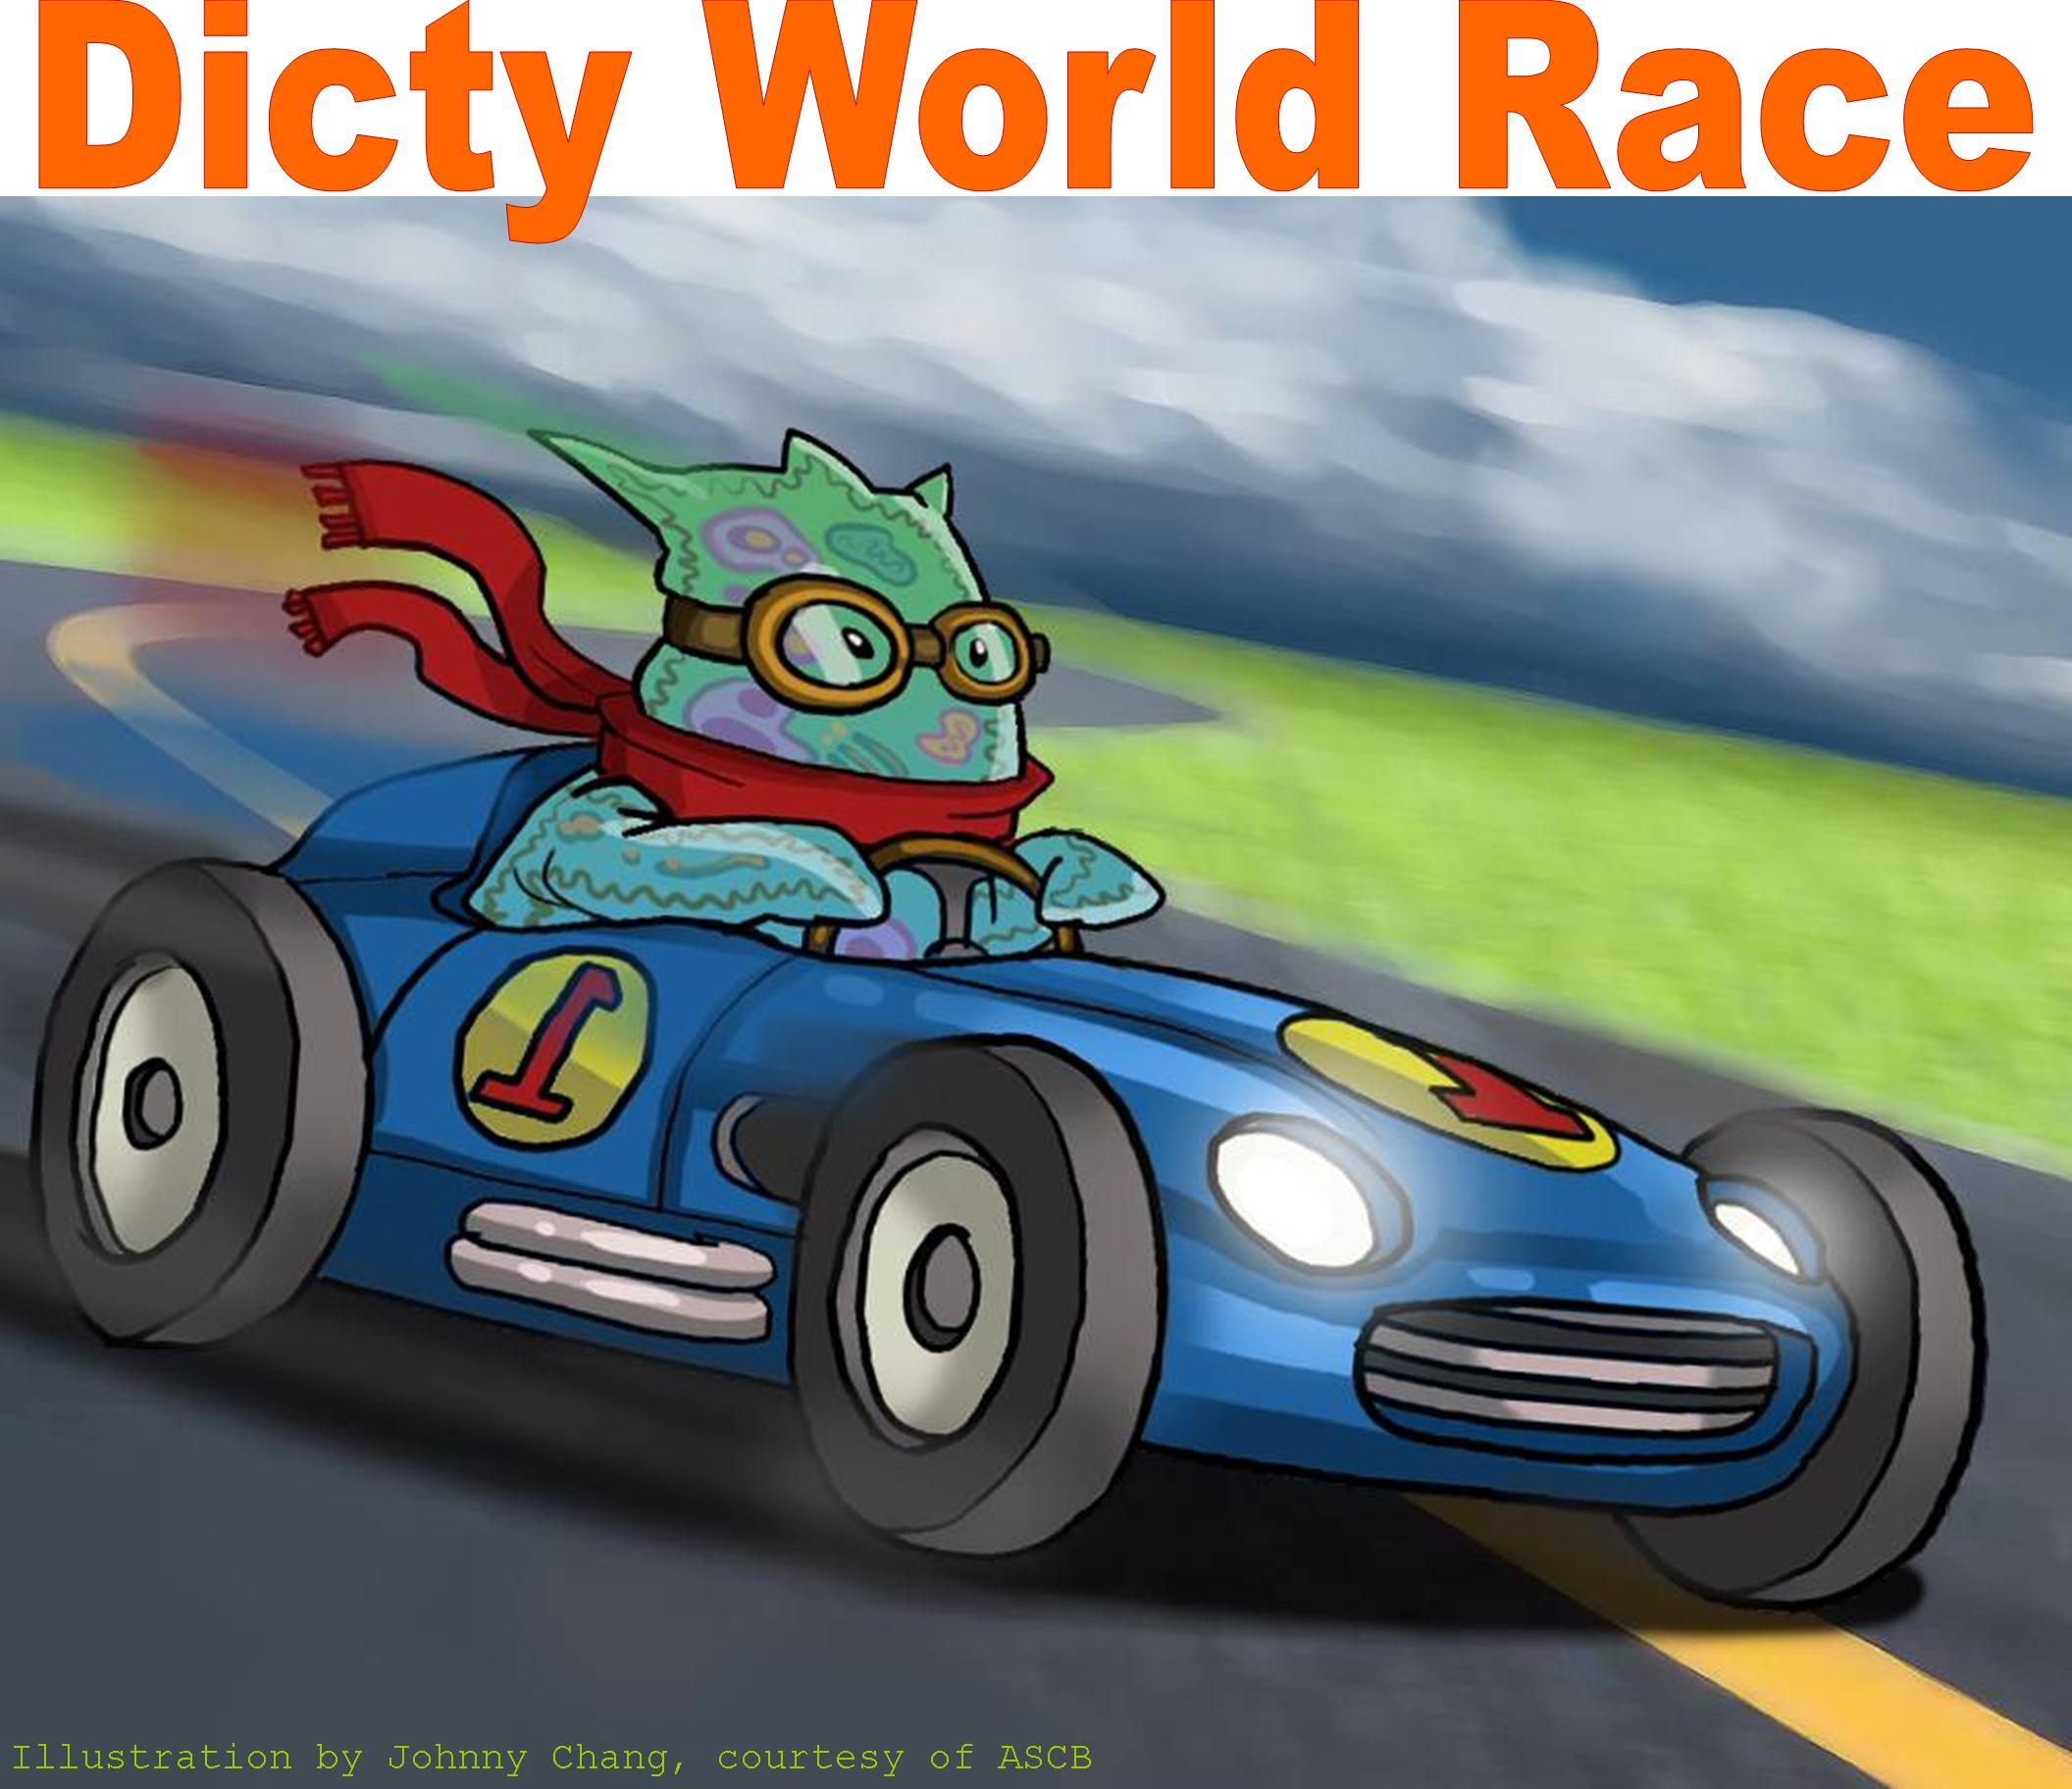 world racing dicty _thanks to Jonny Chang @ ASCB